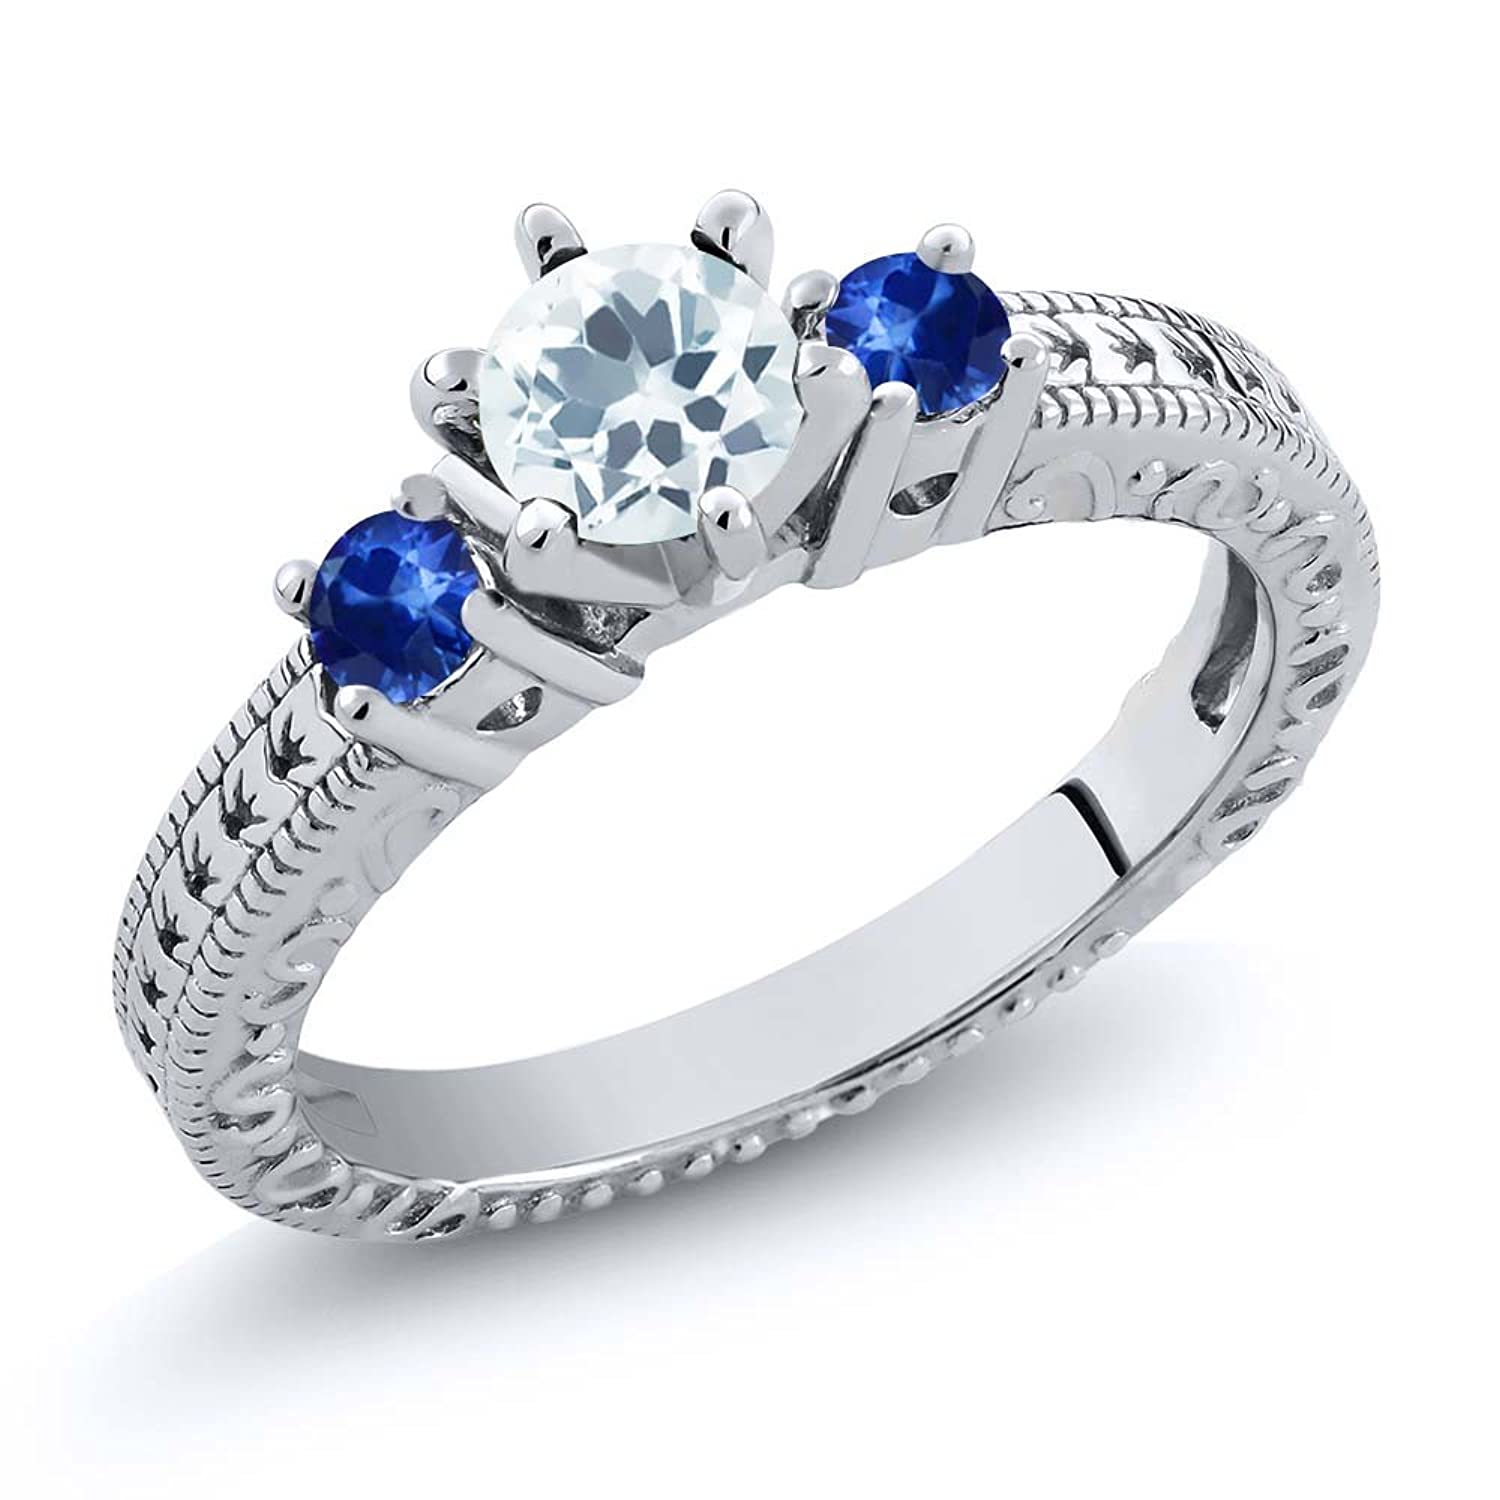 0.71 Ct Round Sky Blue Aquamarine Blue Sapphire 925 Sterling Silver 3-Stone Ring